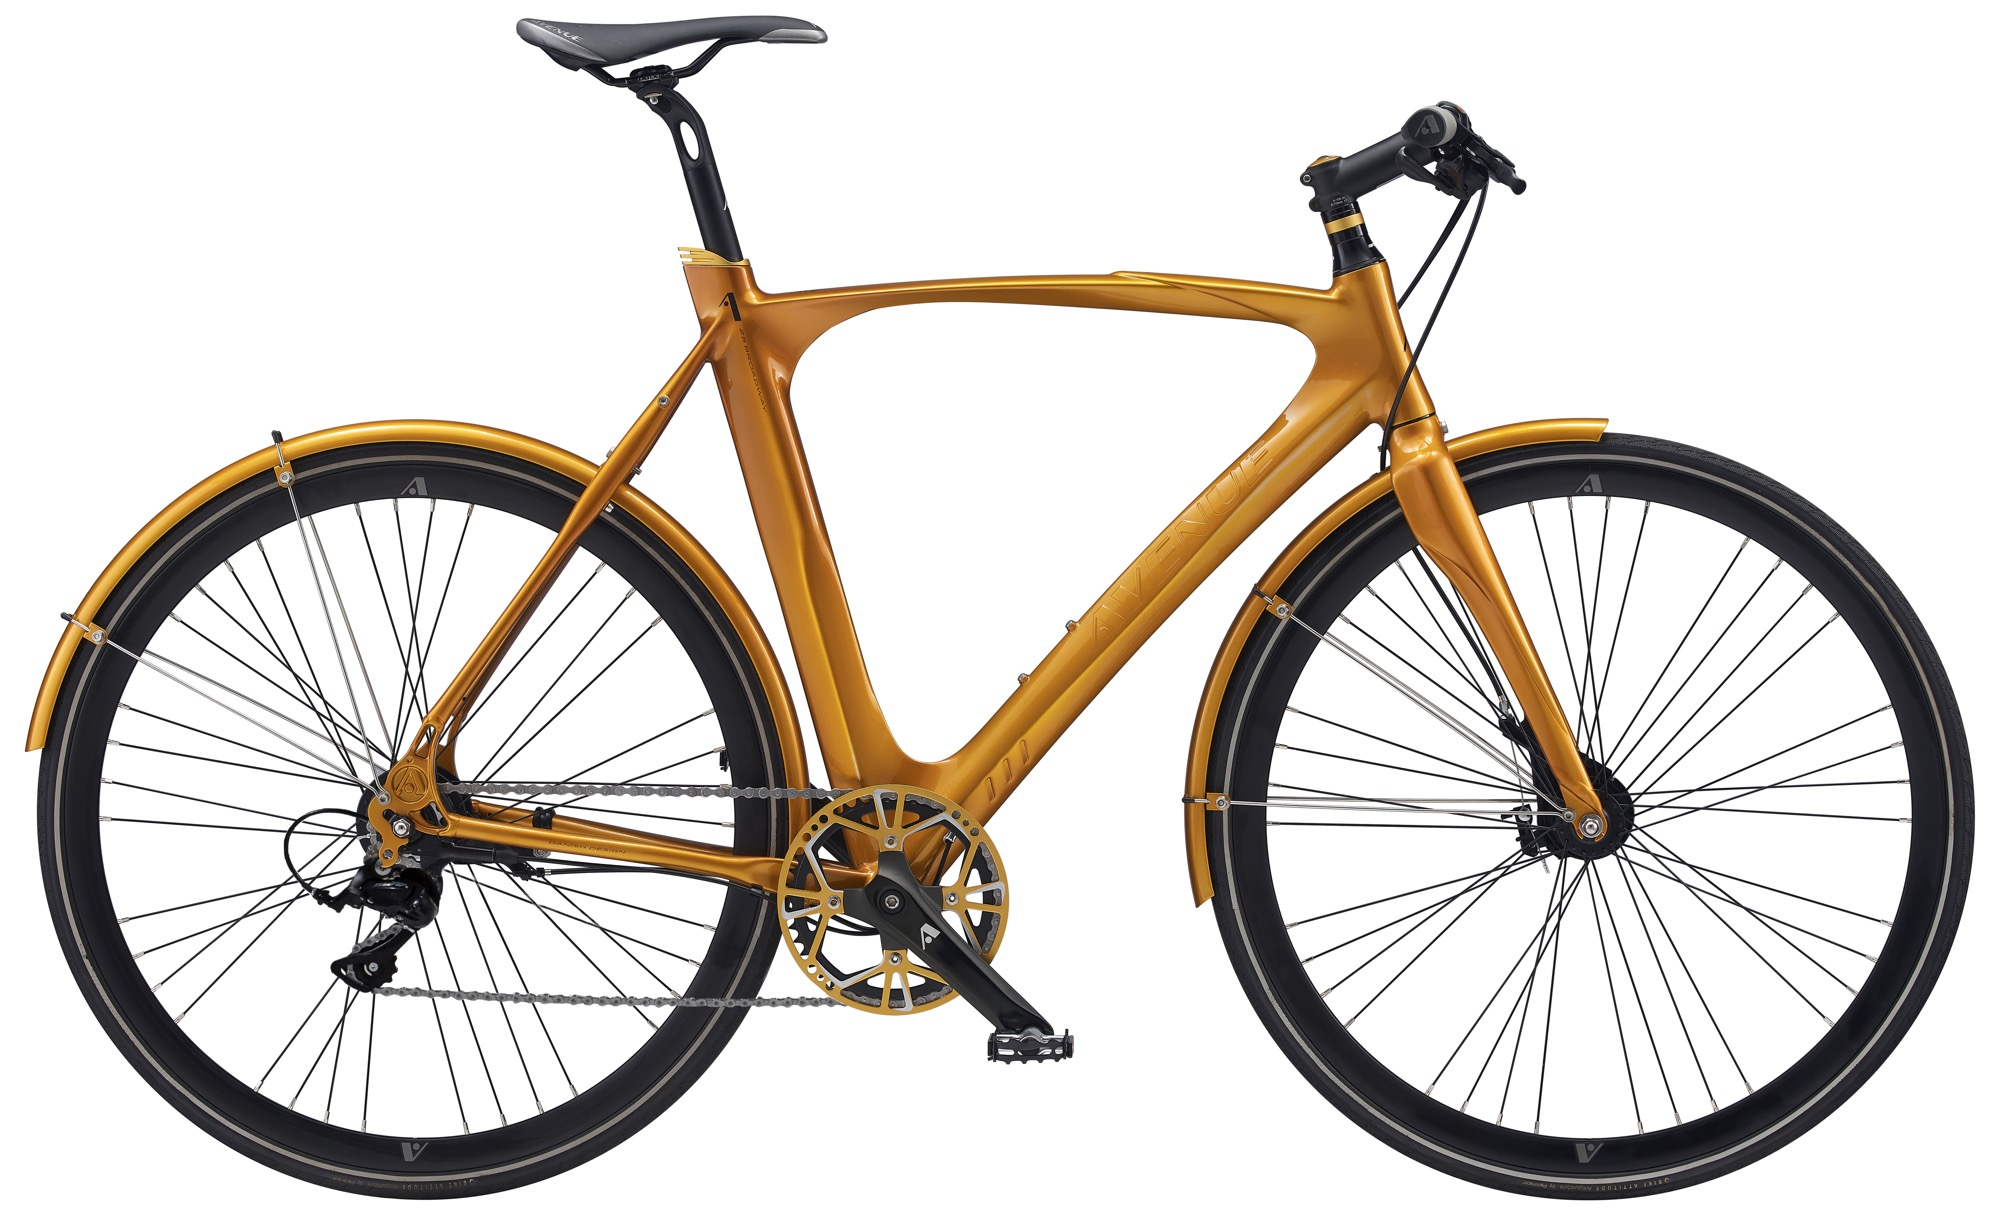 Image of   Avenue 25 Airbase Gent. 10 speed Tiagra Hydr. Disc. Shiny gold